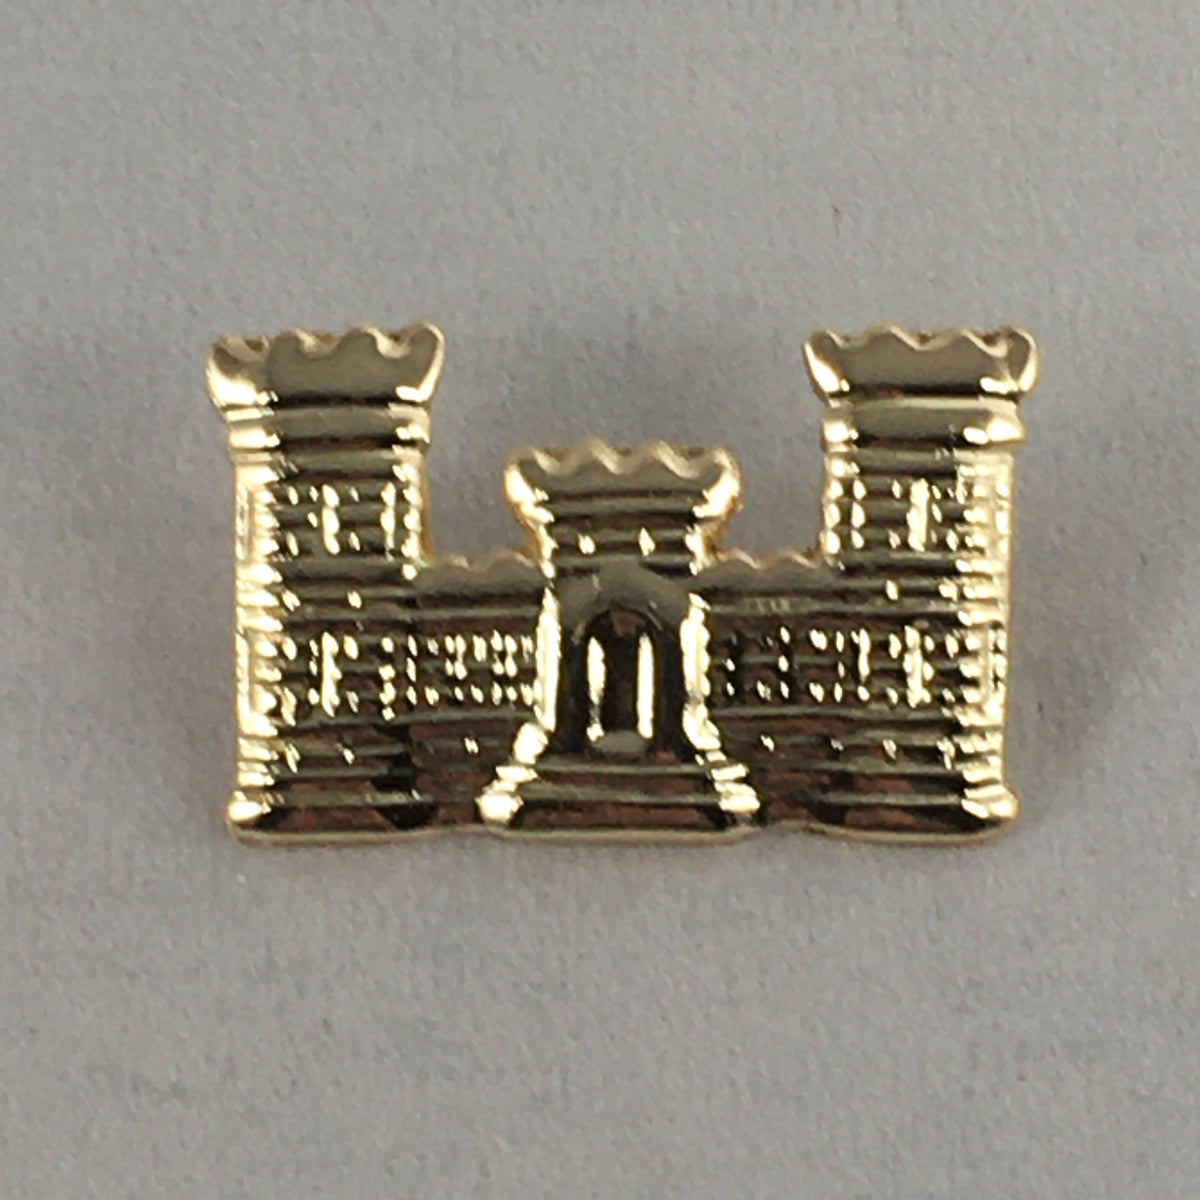 US Army Corps of Engineers Pin